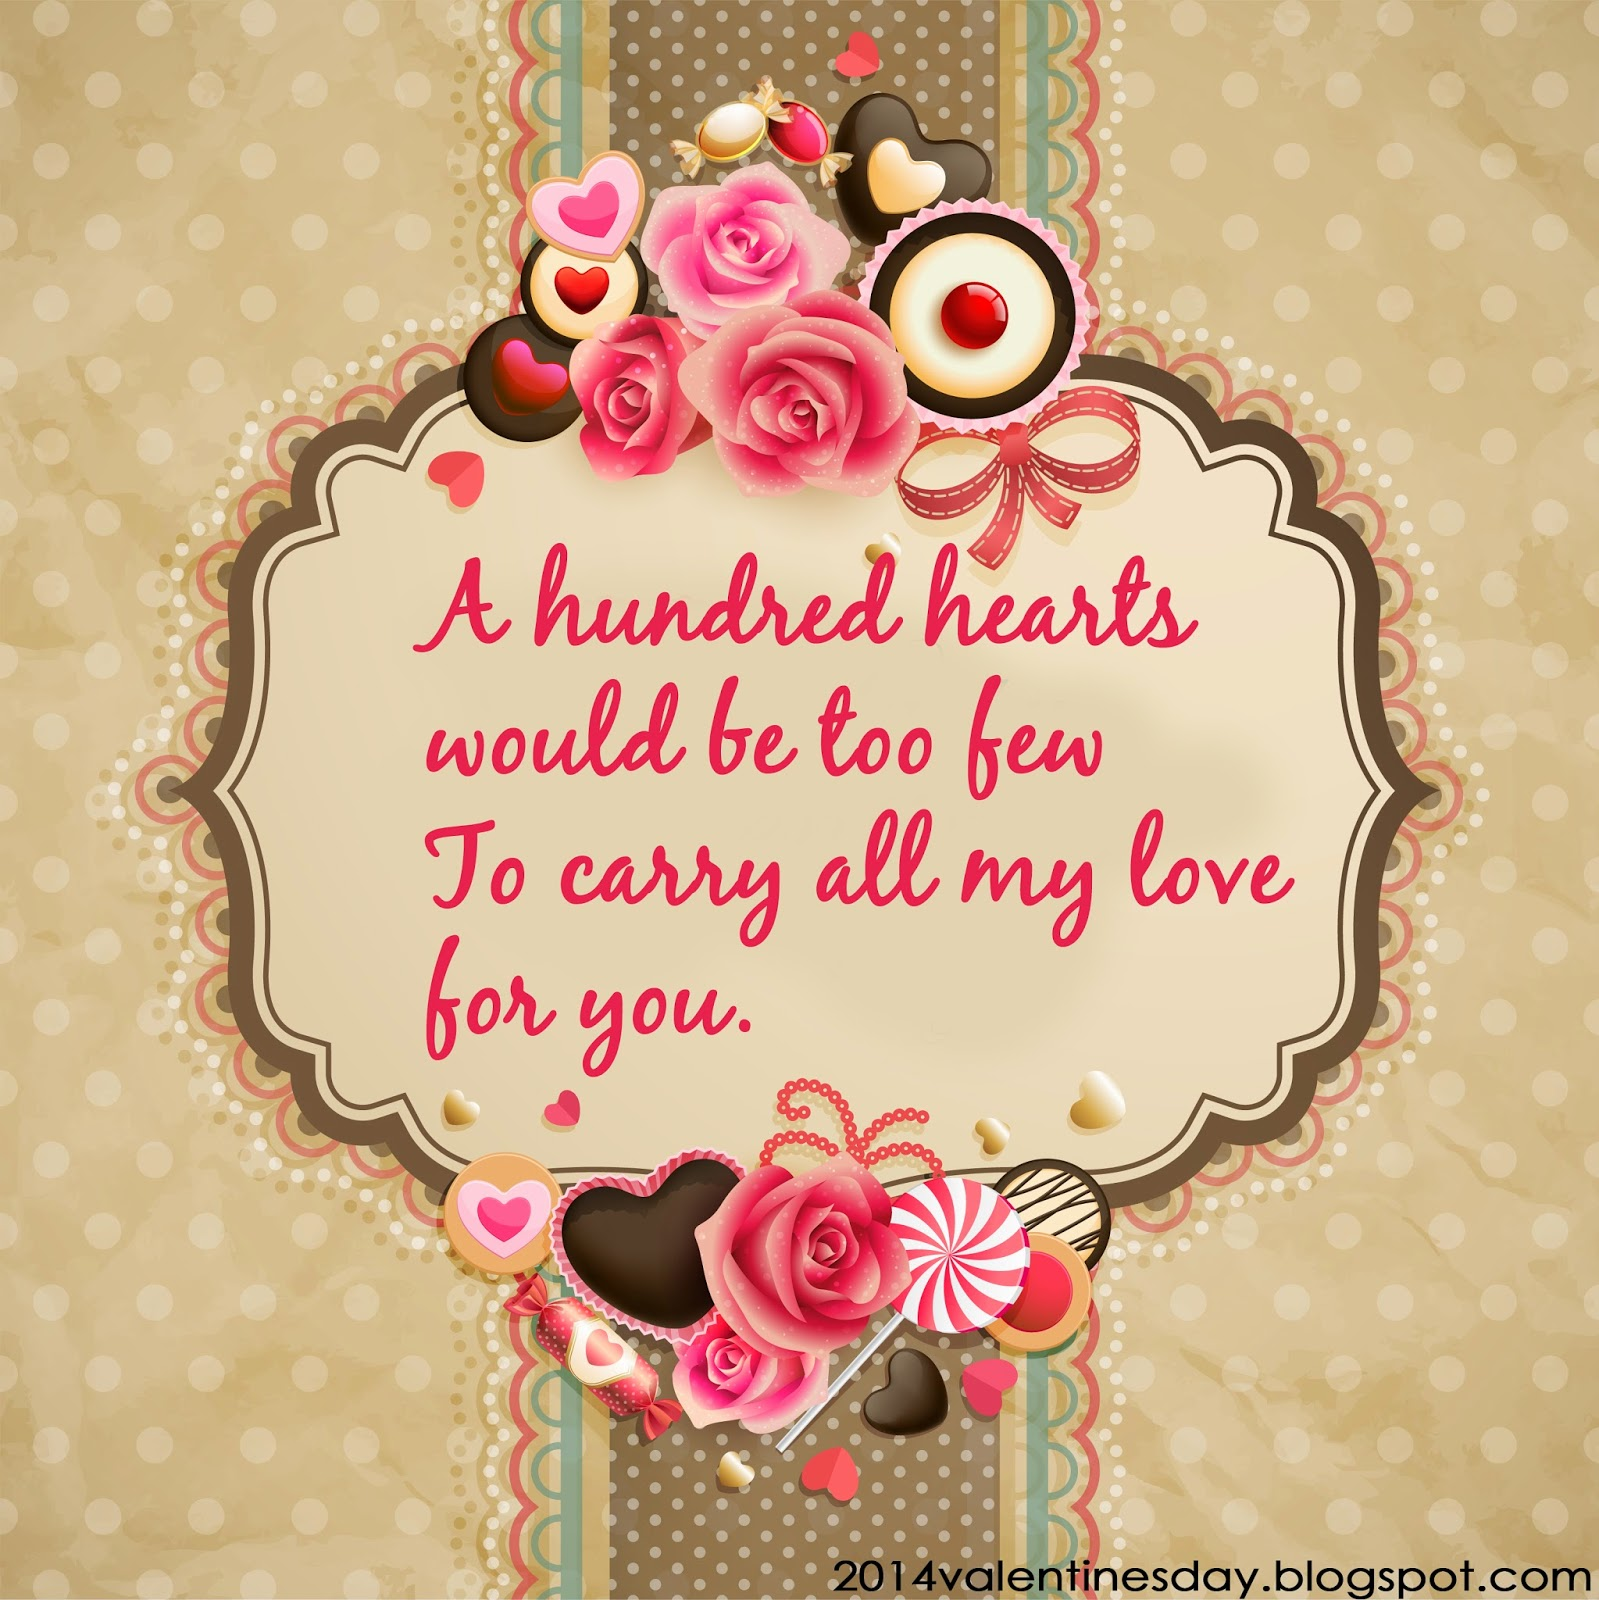 Friend Valentines Quotes: Valentines Day Friendship Quotes. QuotesGram